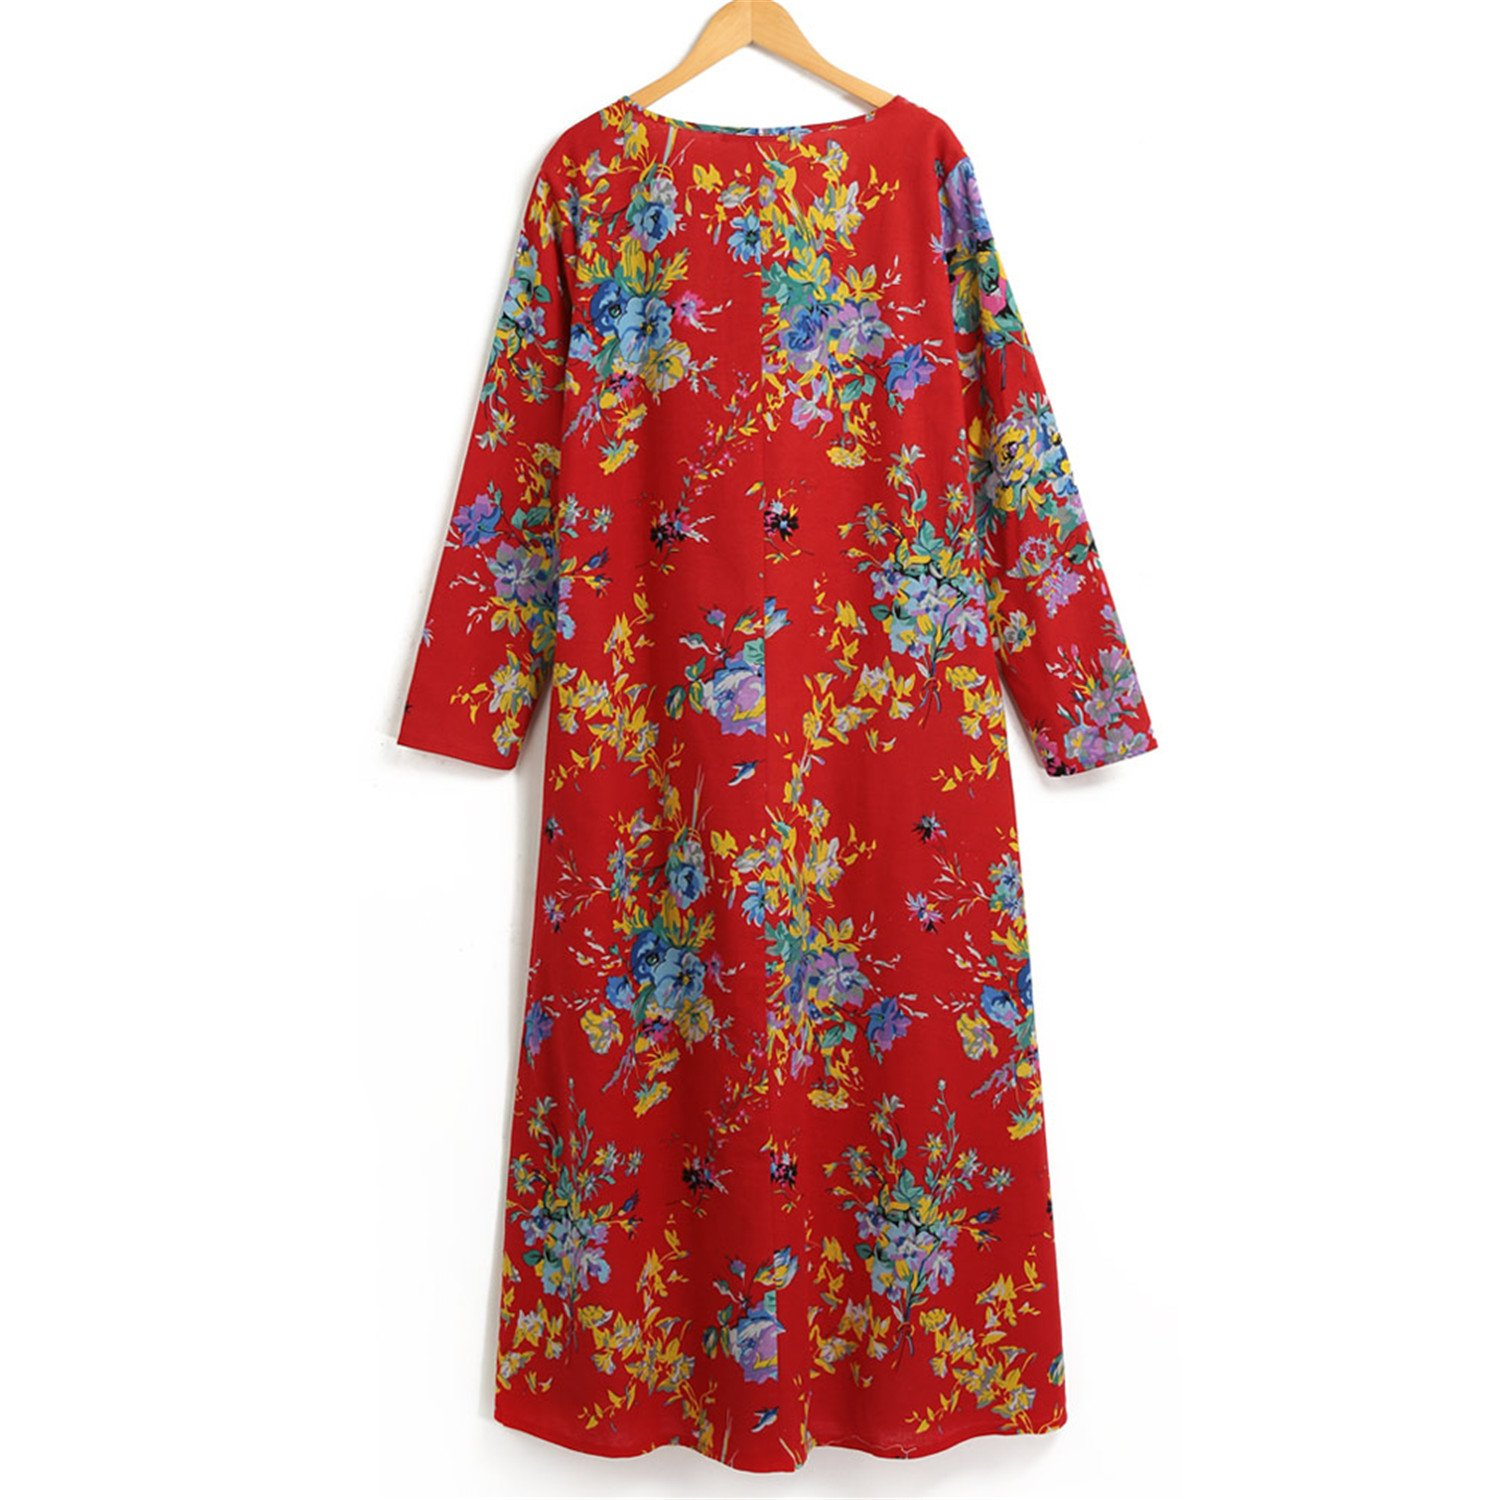 6f303e6bd6 Chiffoned Women Spring Dresses Plus Size Cotton Linen Maxi Dress Vintage  Loose Floral Print Beach Robe Dress at Amazon Women s Clothing store